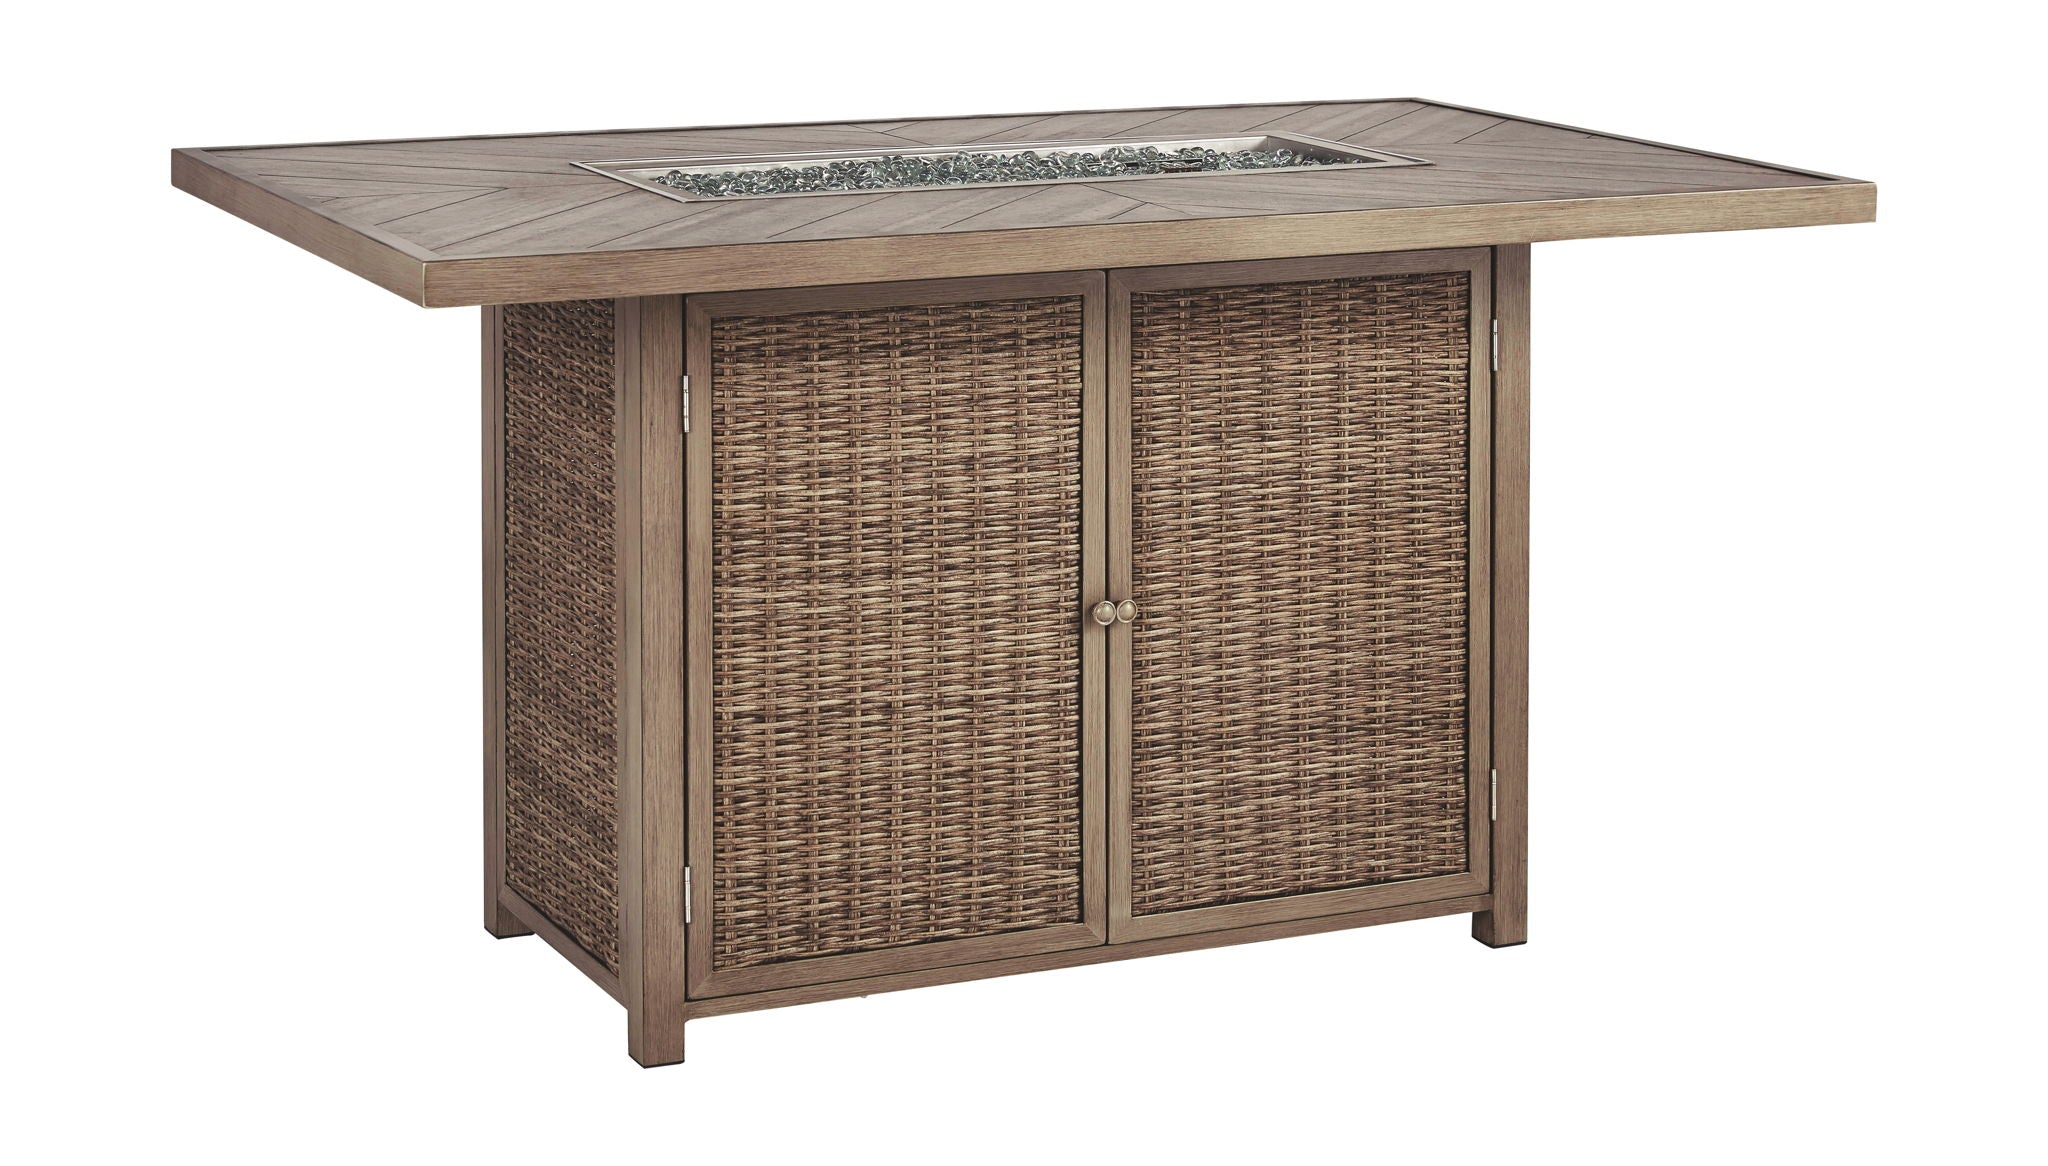 Beachcroft Bar Table with Fire Pit | Calgary's Furniture Store